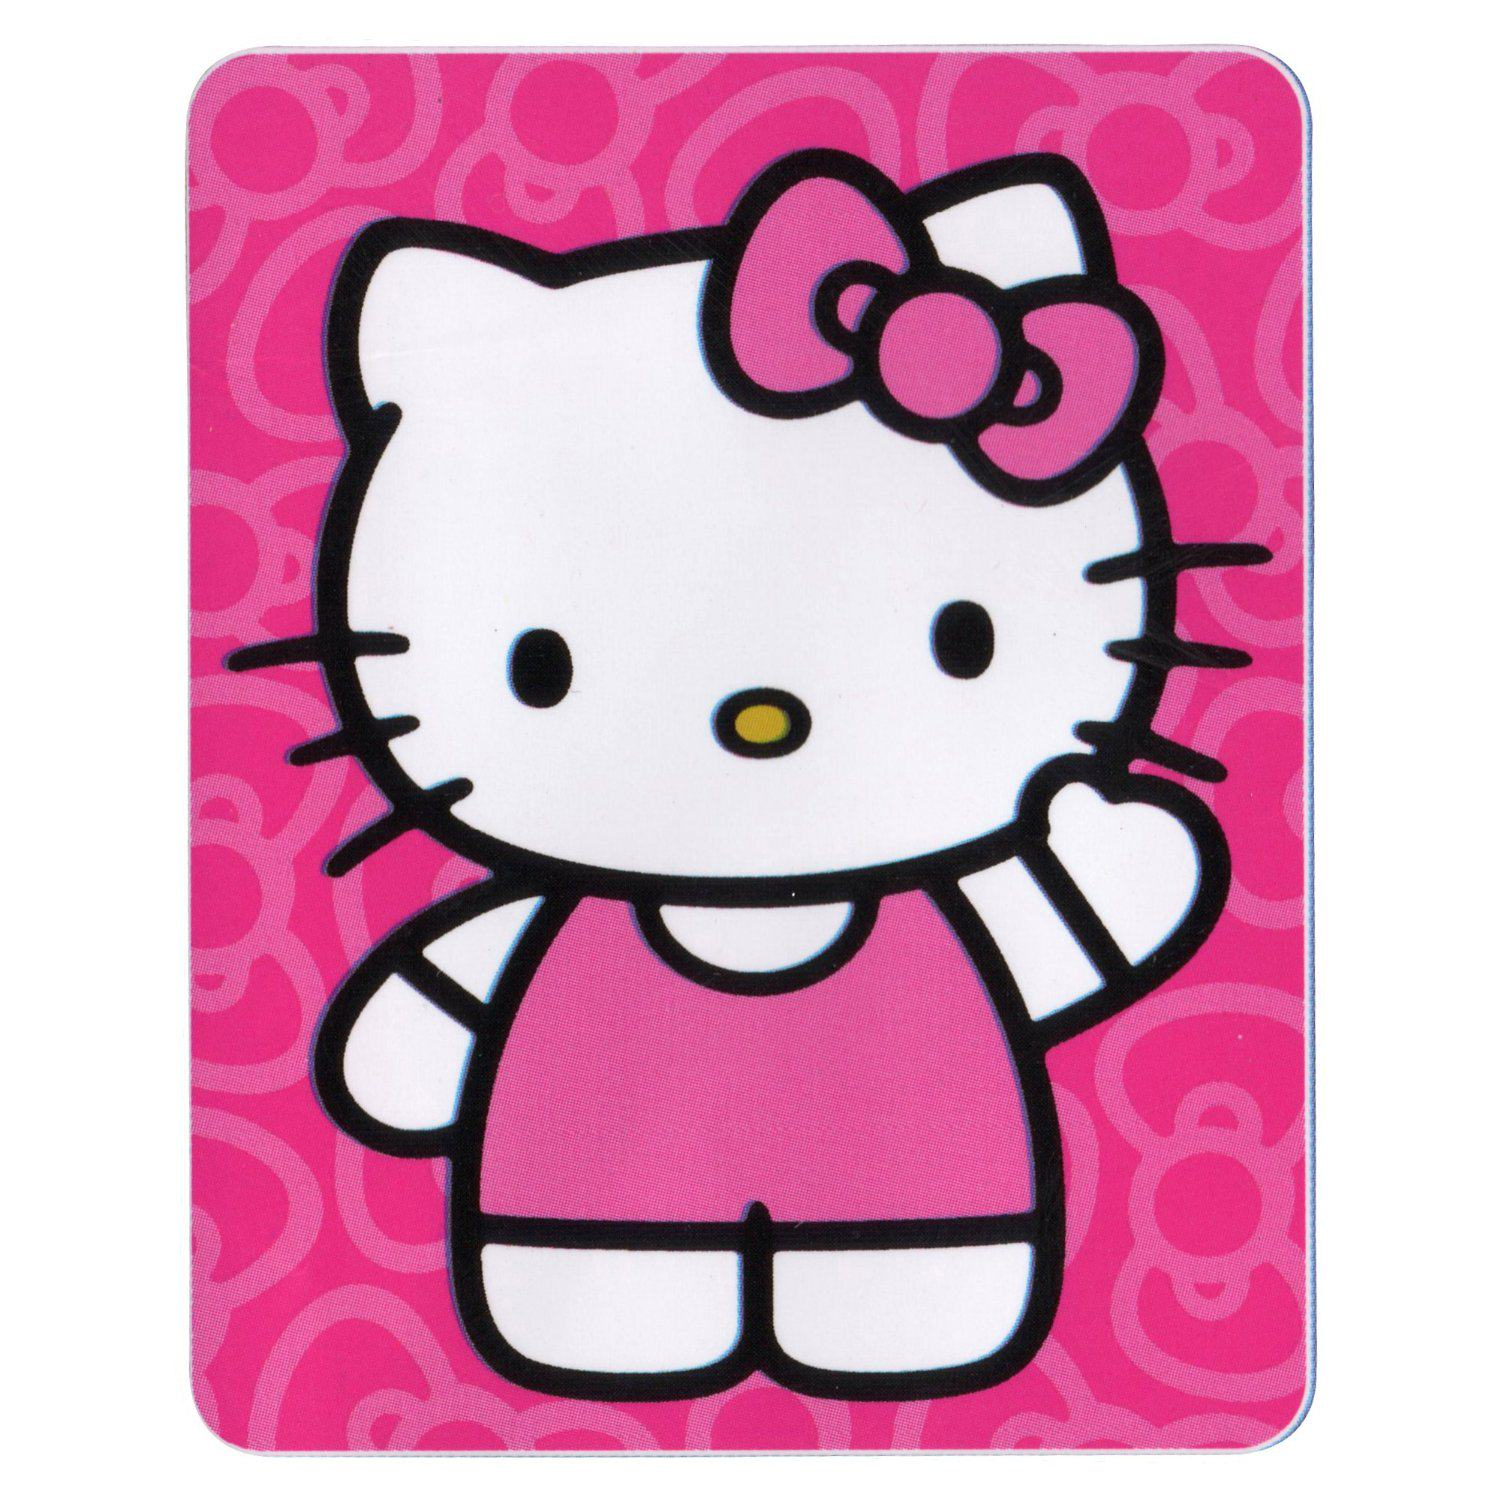 Hello Kitty Throw Blankets - The Blanket Store